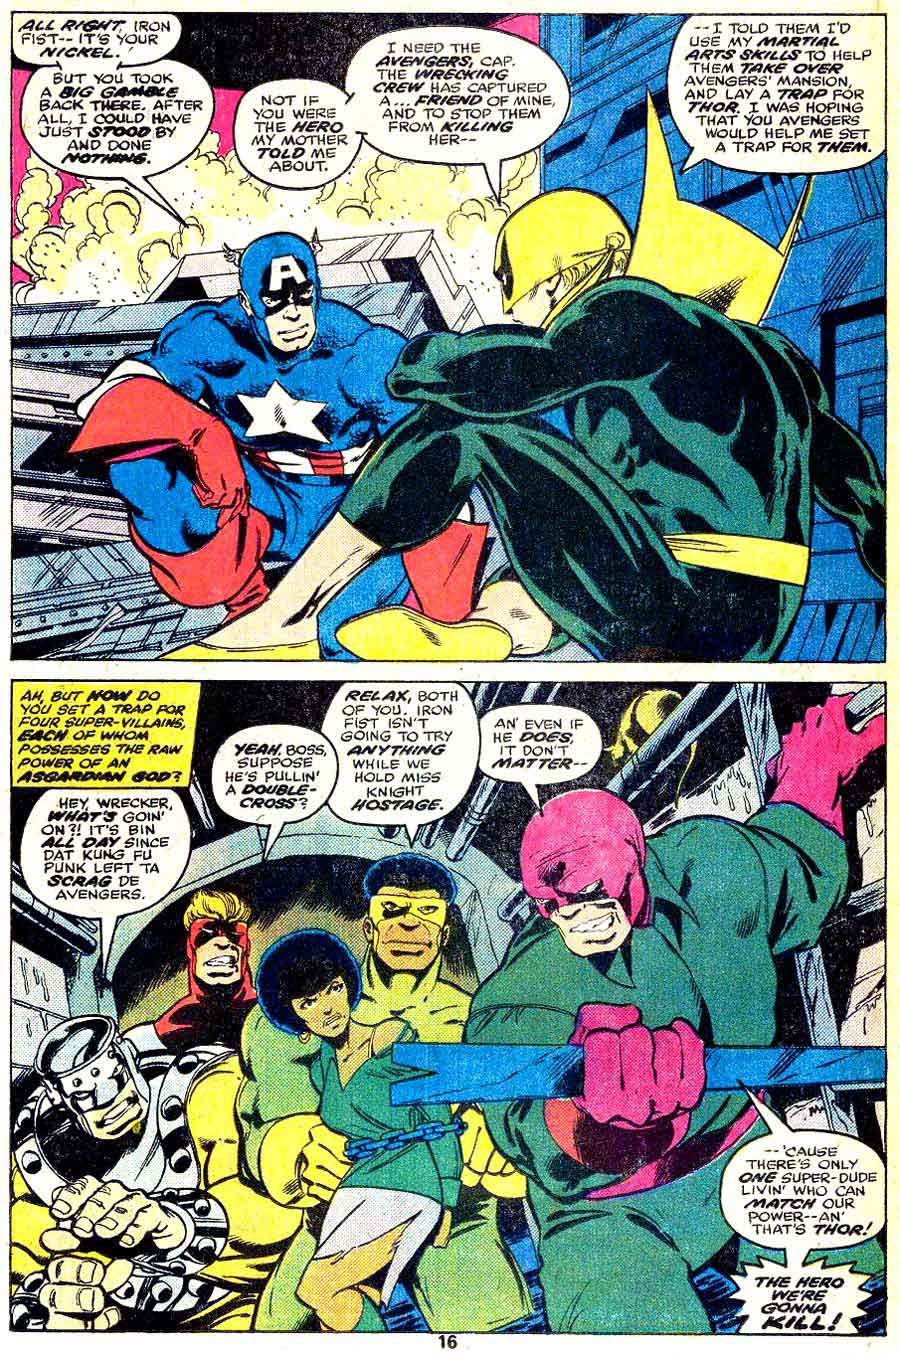 Iron Fist v1 #12 marvel bronze age comic book page art by John Byrne